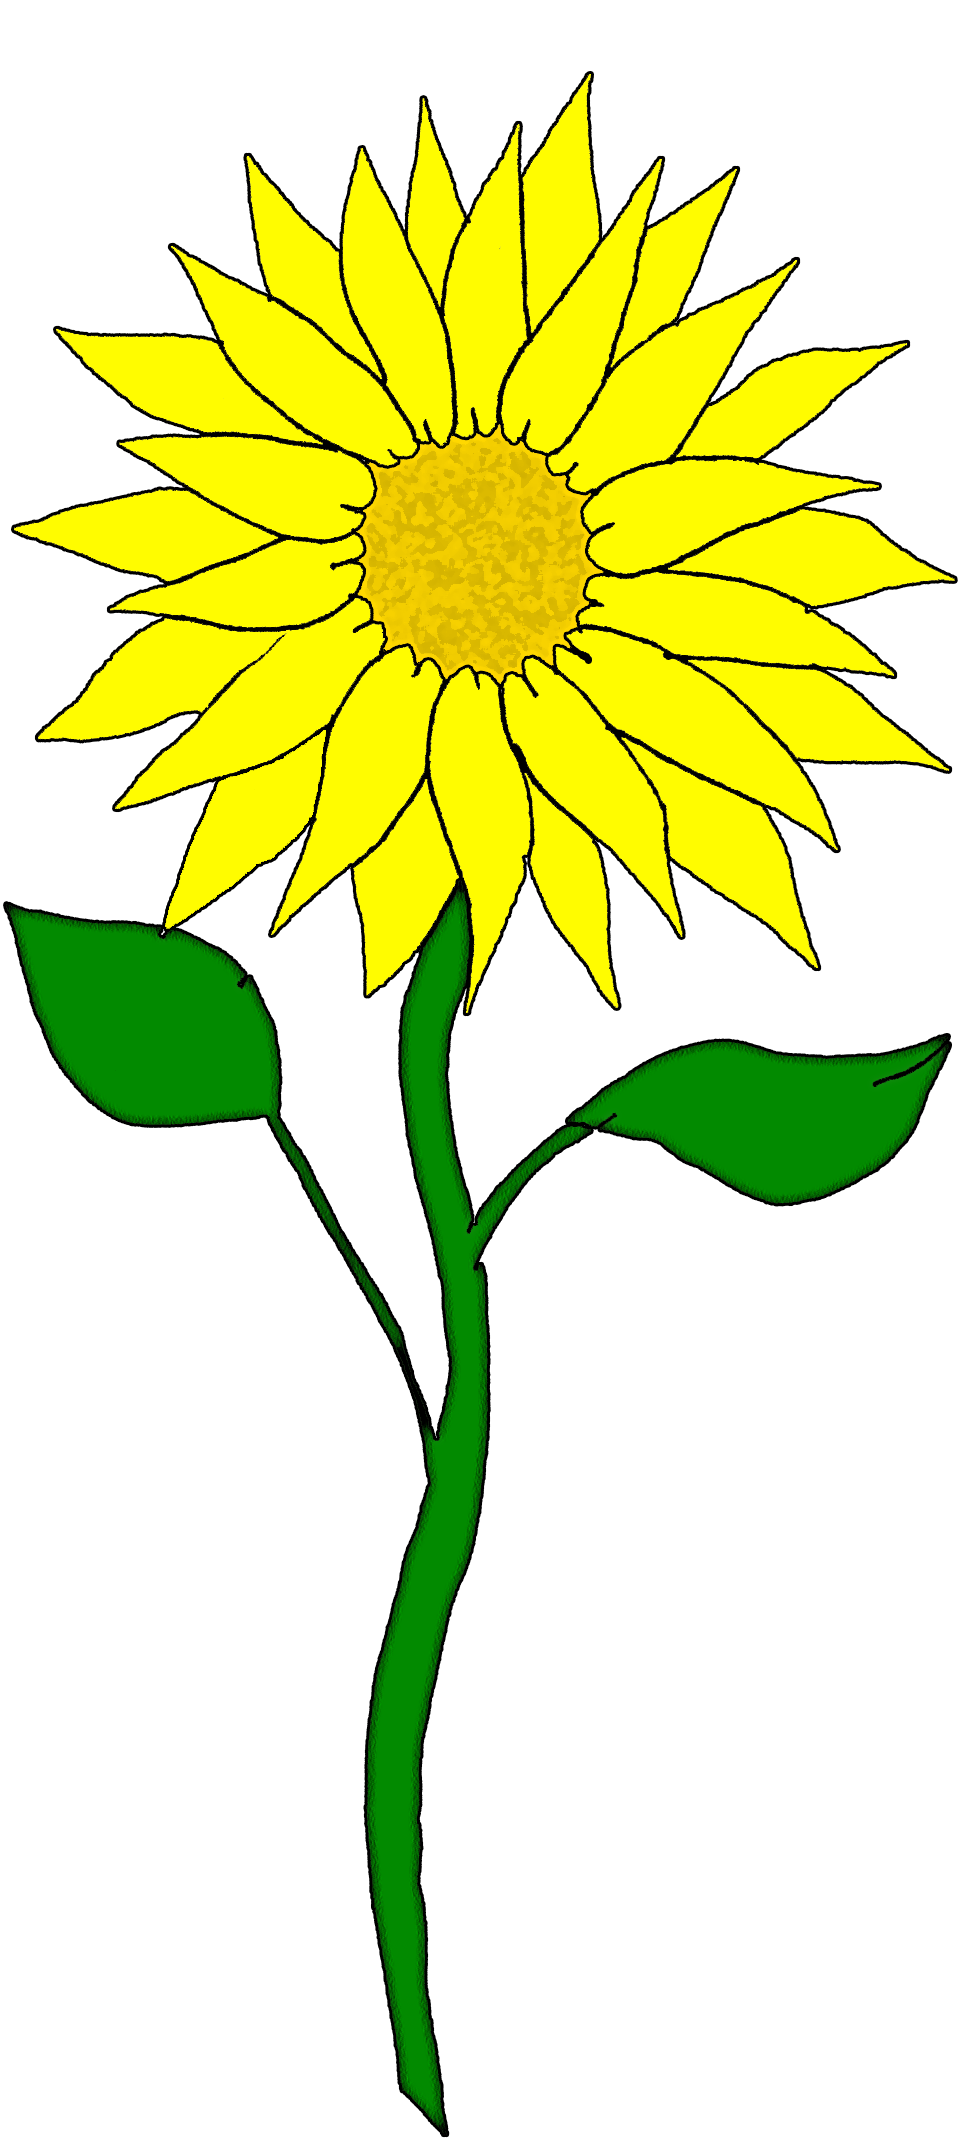 Free flower flowers pinterest. Harvest clipart sunflower